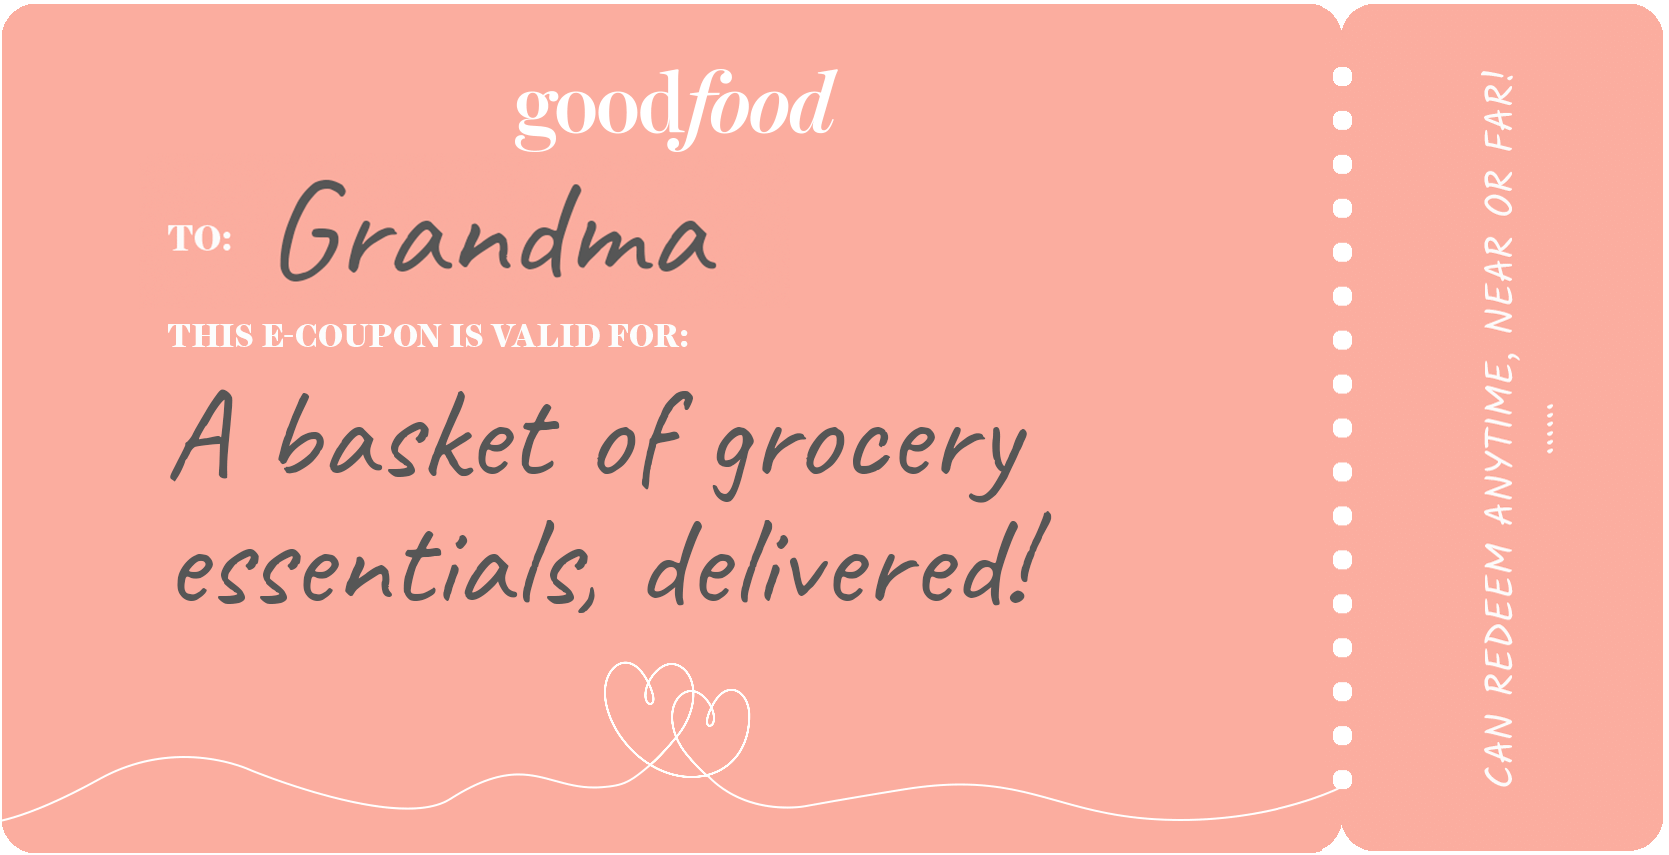 Coupon example, grocery delivery